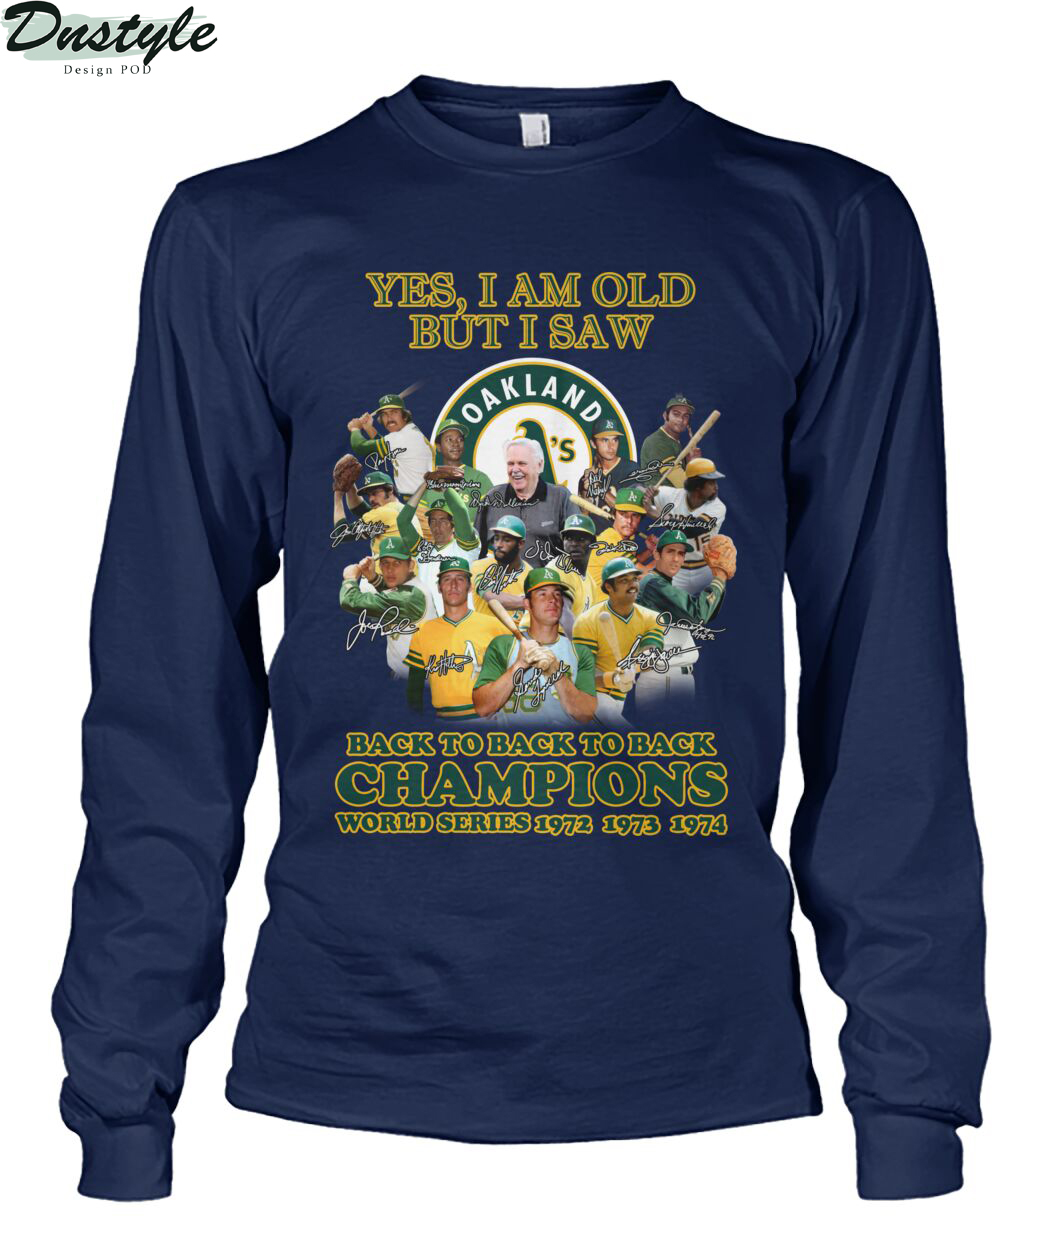 Yes I am old but I saw back to back to back champions long sleeve